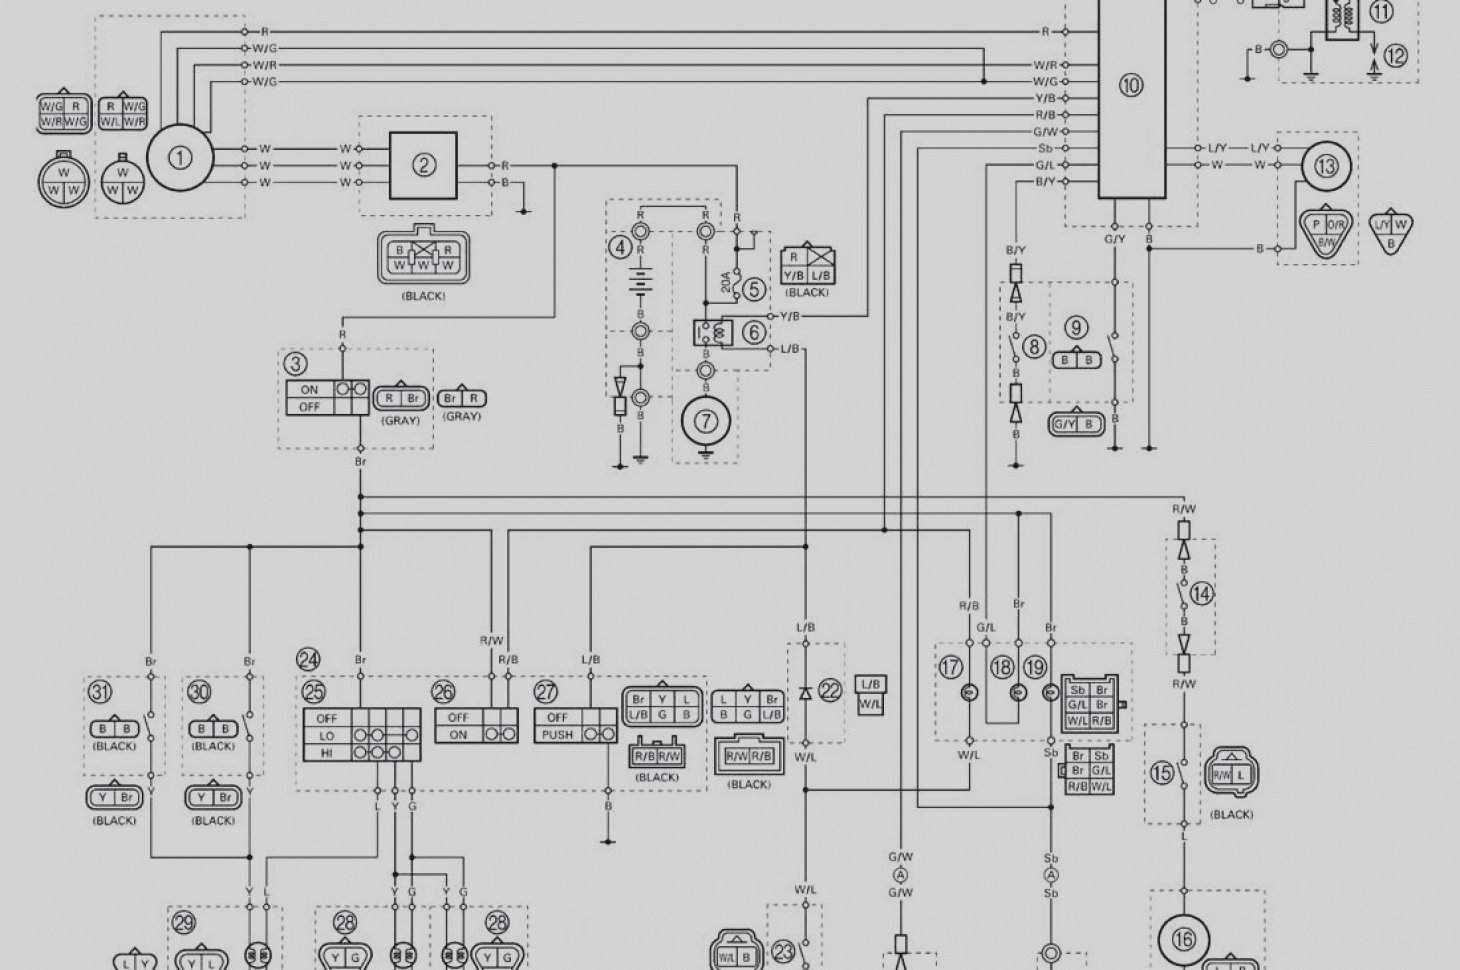 Outstanding Ds 650 Wiring Diagrams Electronic Schematics Collections Wiring Cloud Onicaalyptbenolwigegmohammedshrineorg